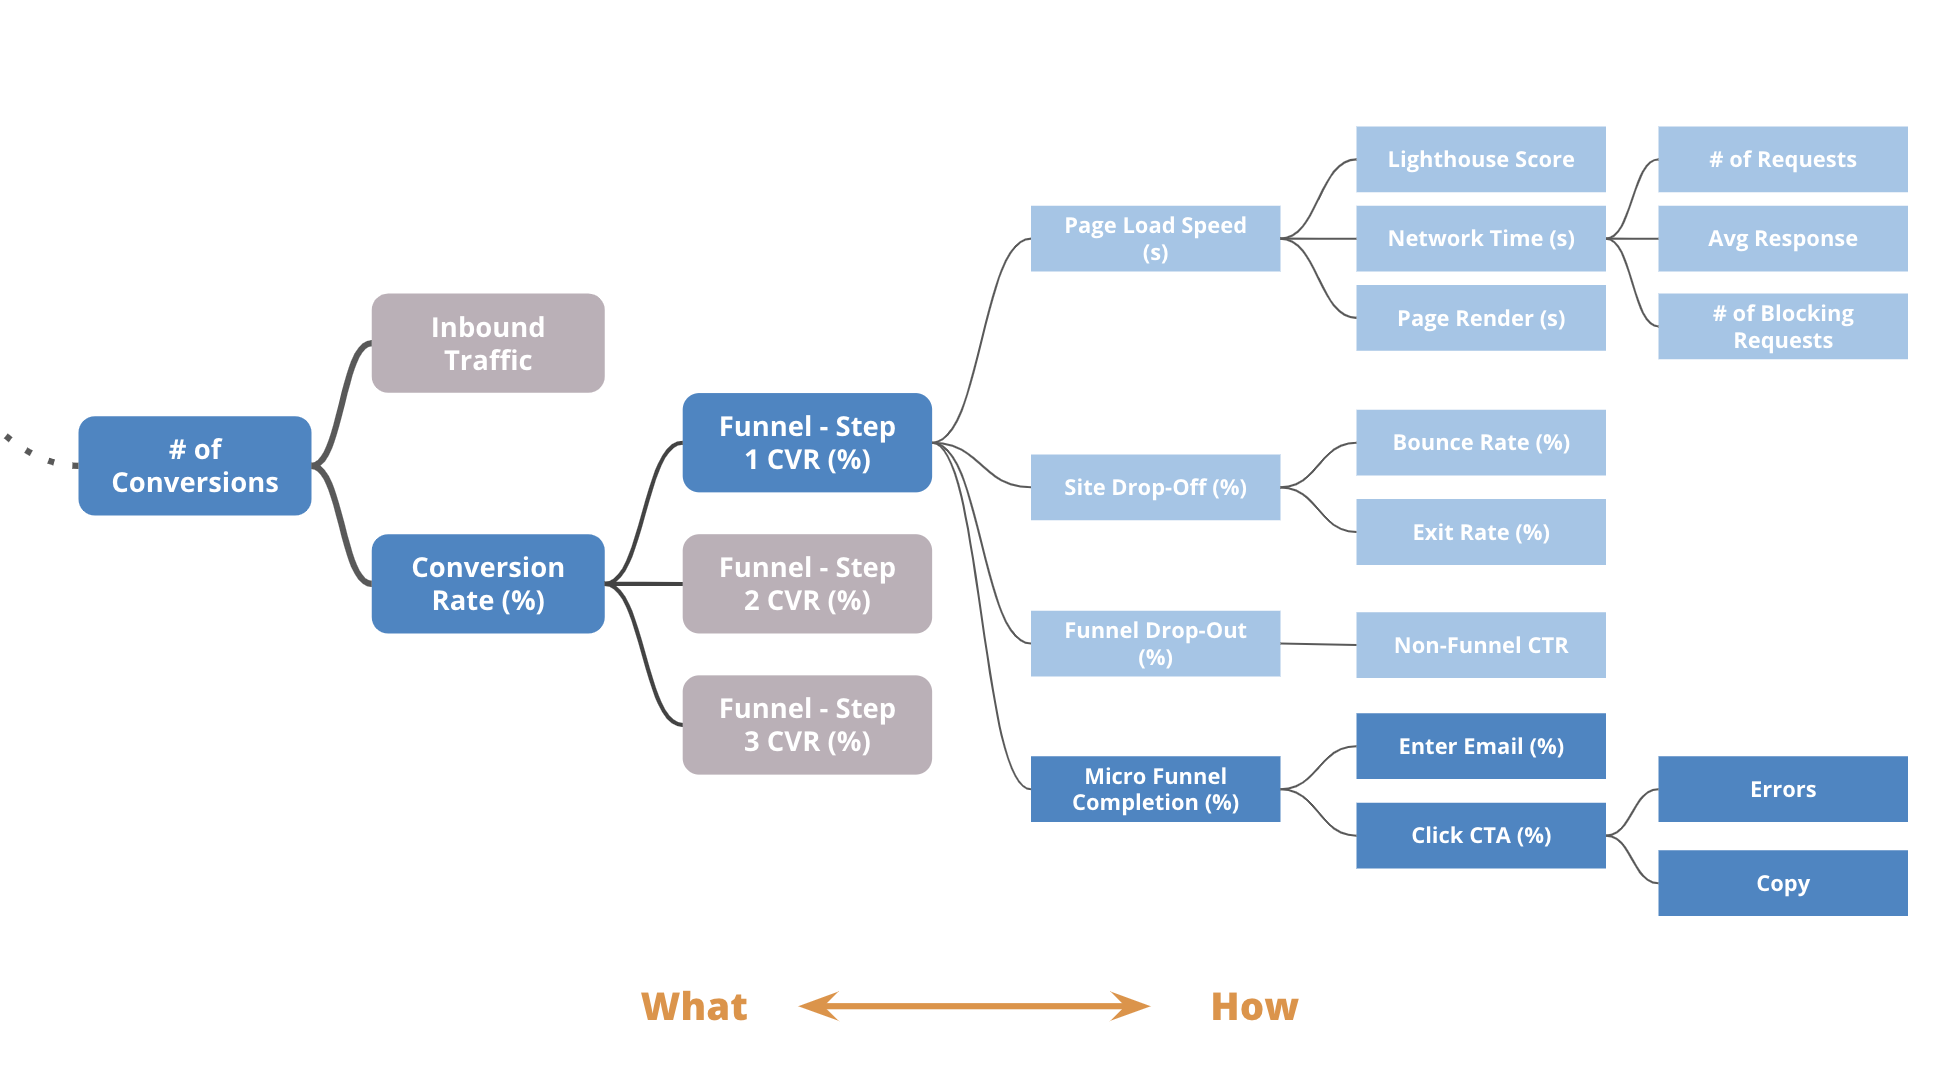 Driver Trees How And Why To Use Them To Improve Your Business By Curtis Stanier The Startup Medium